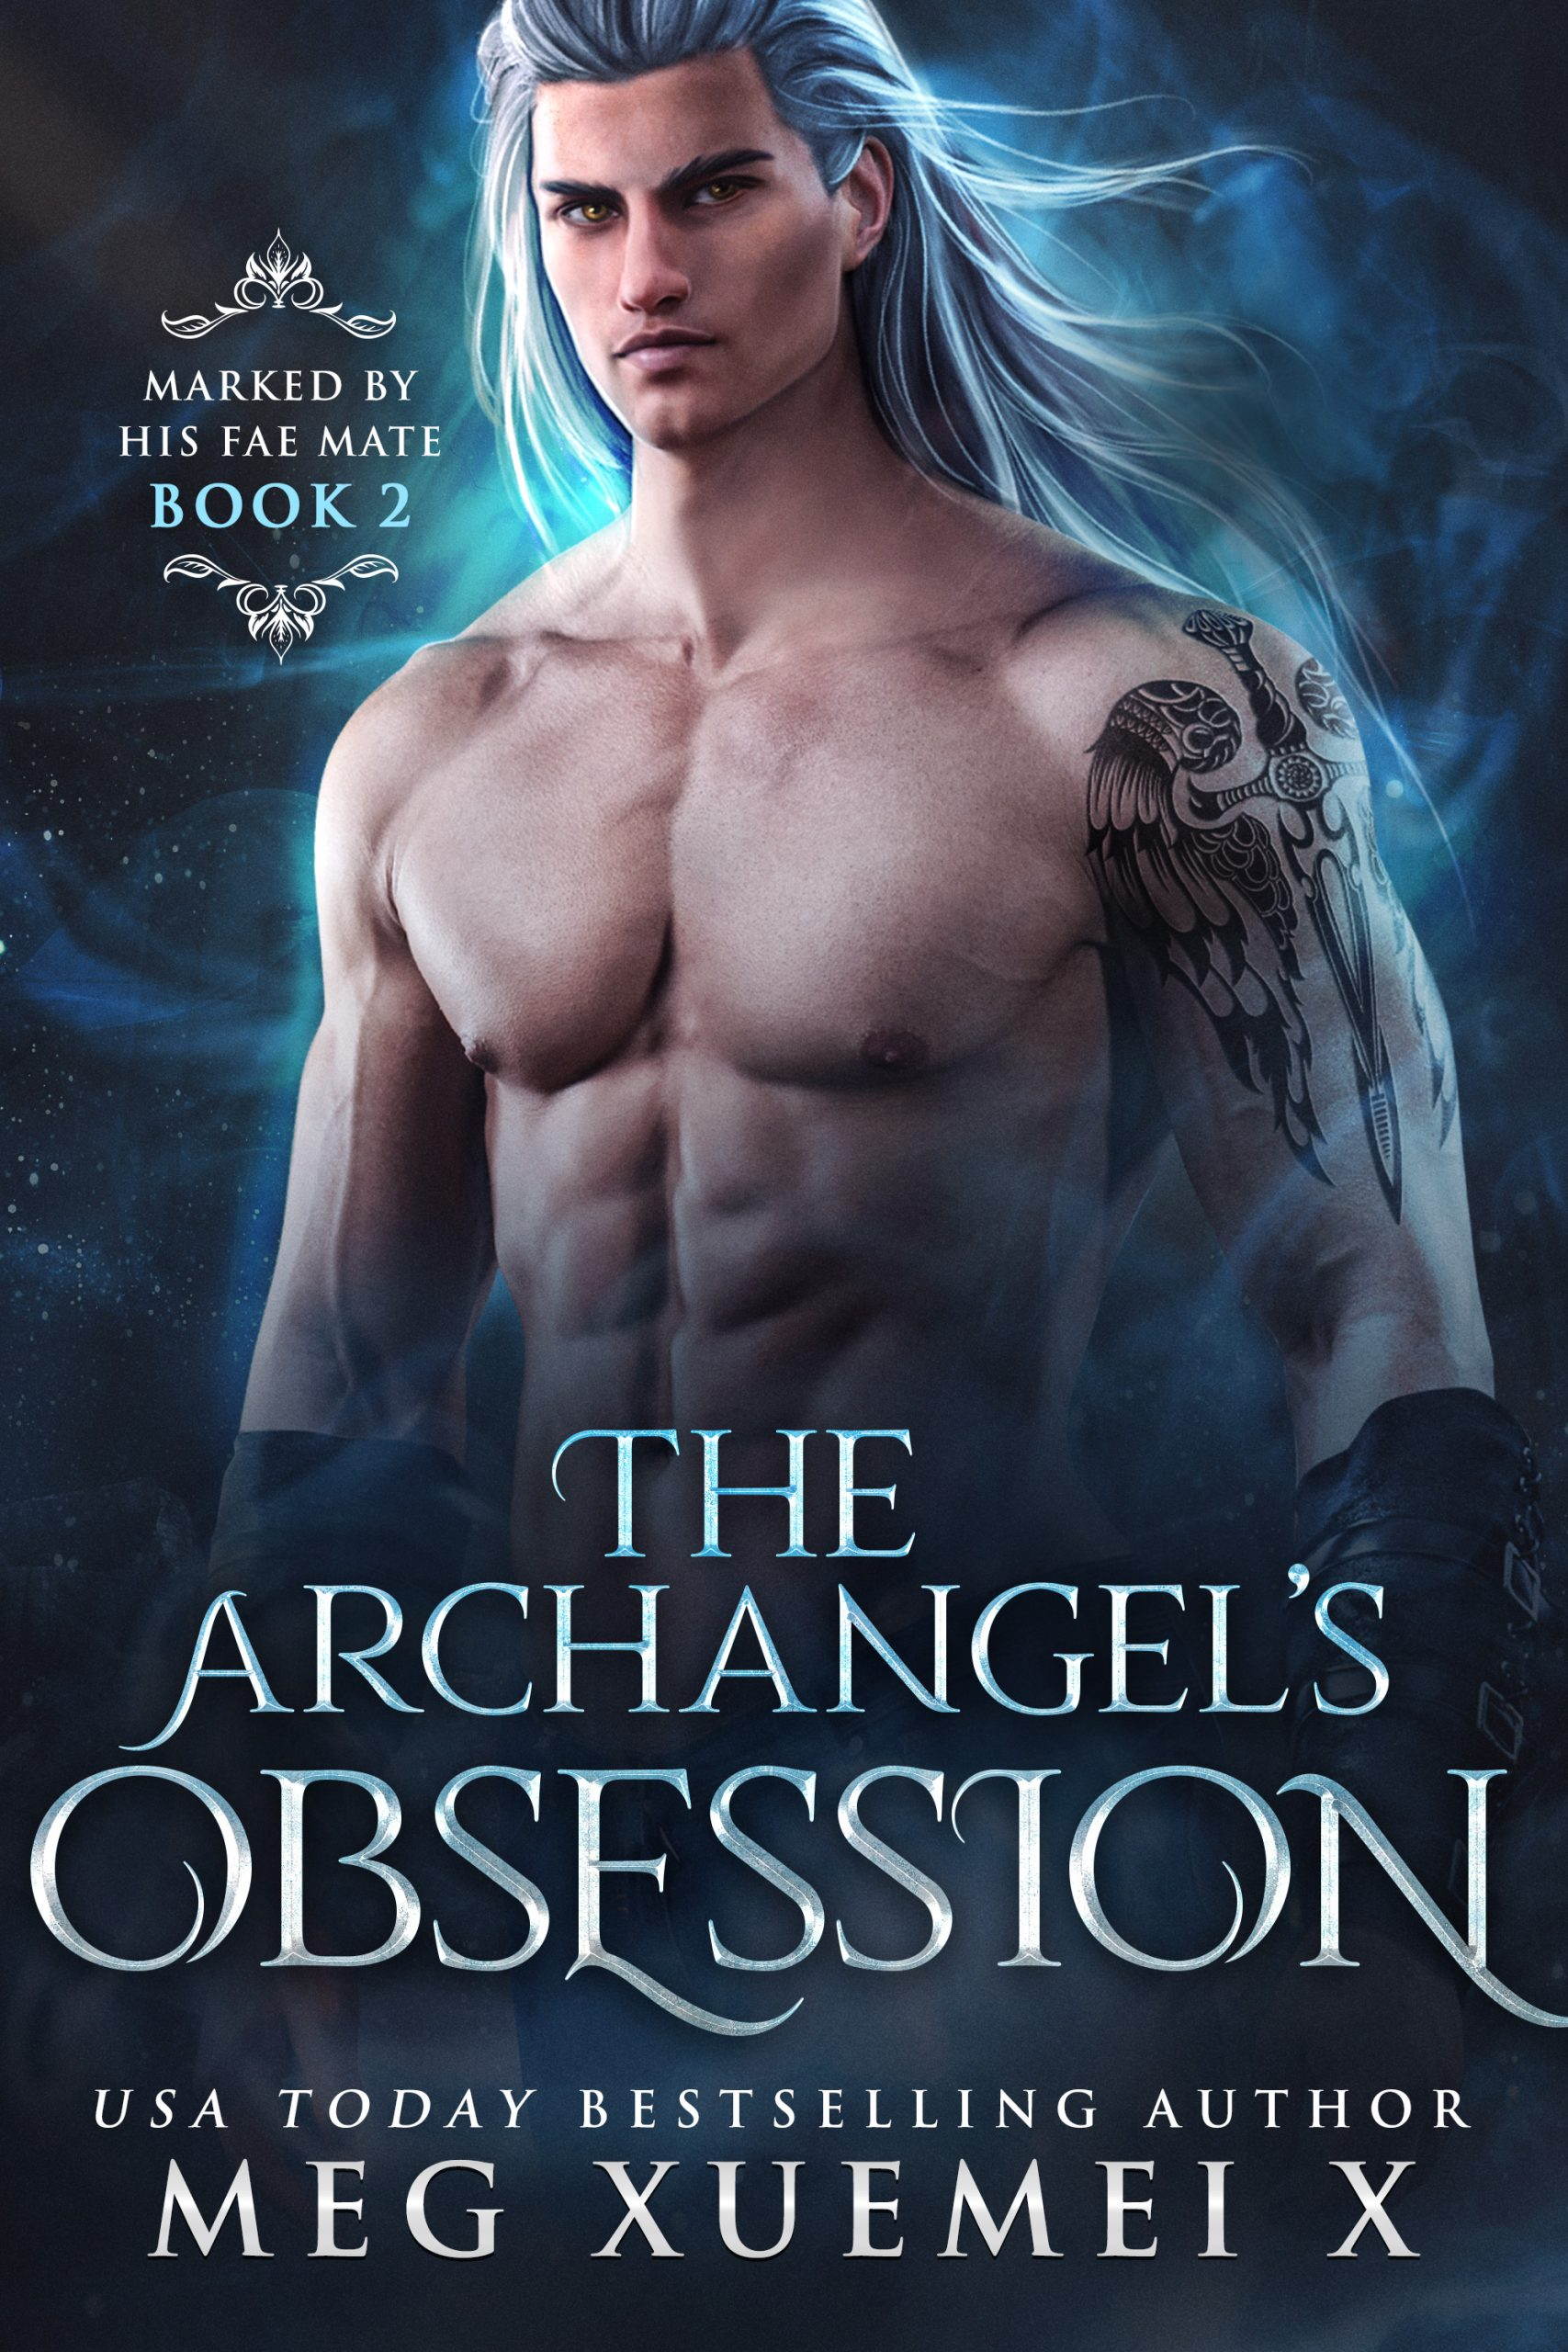 The Archangel's Obsession